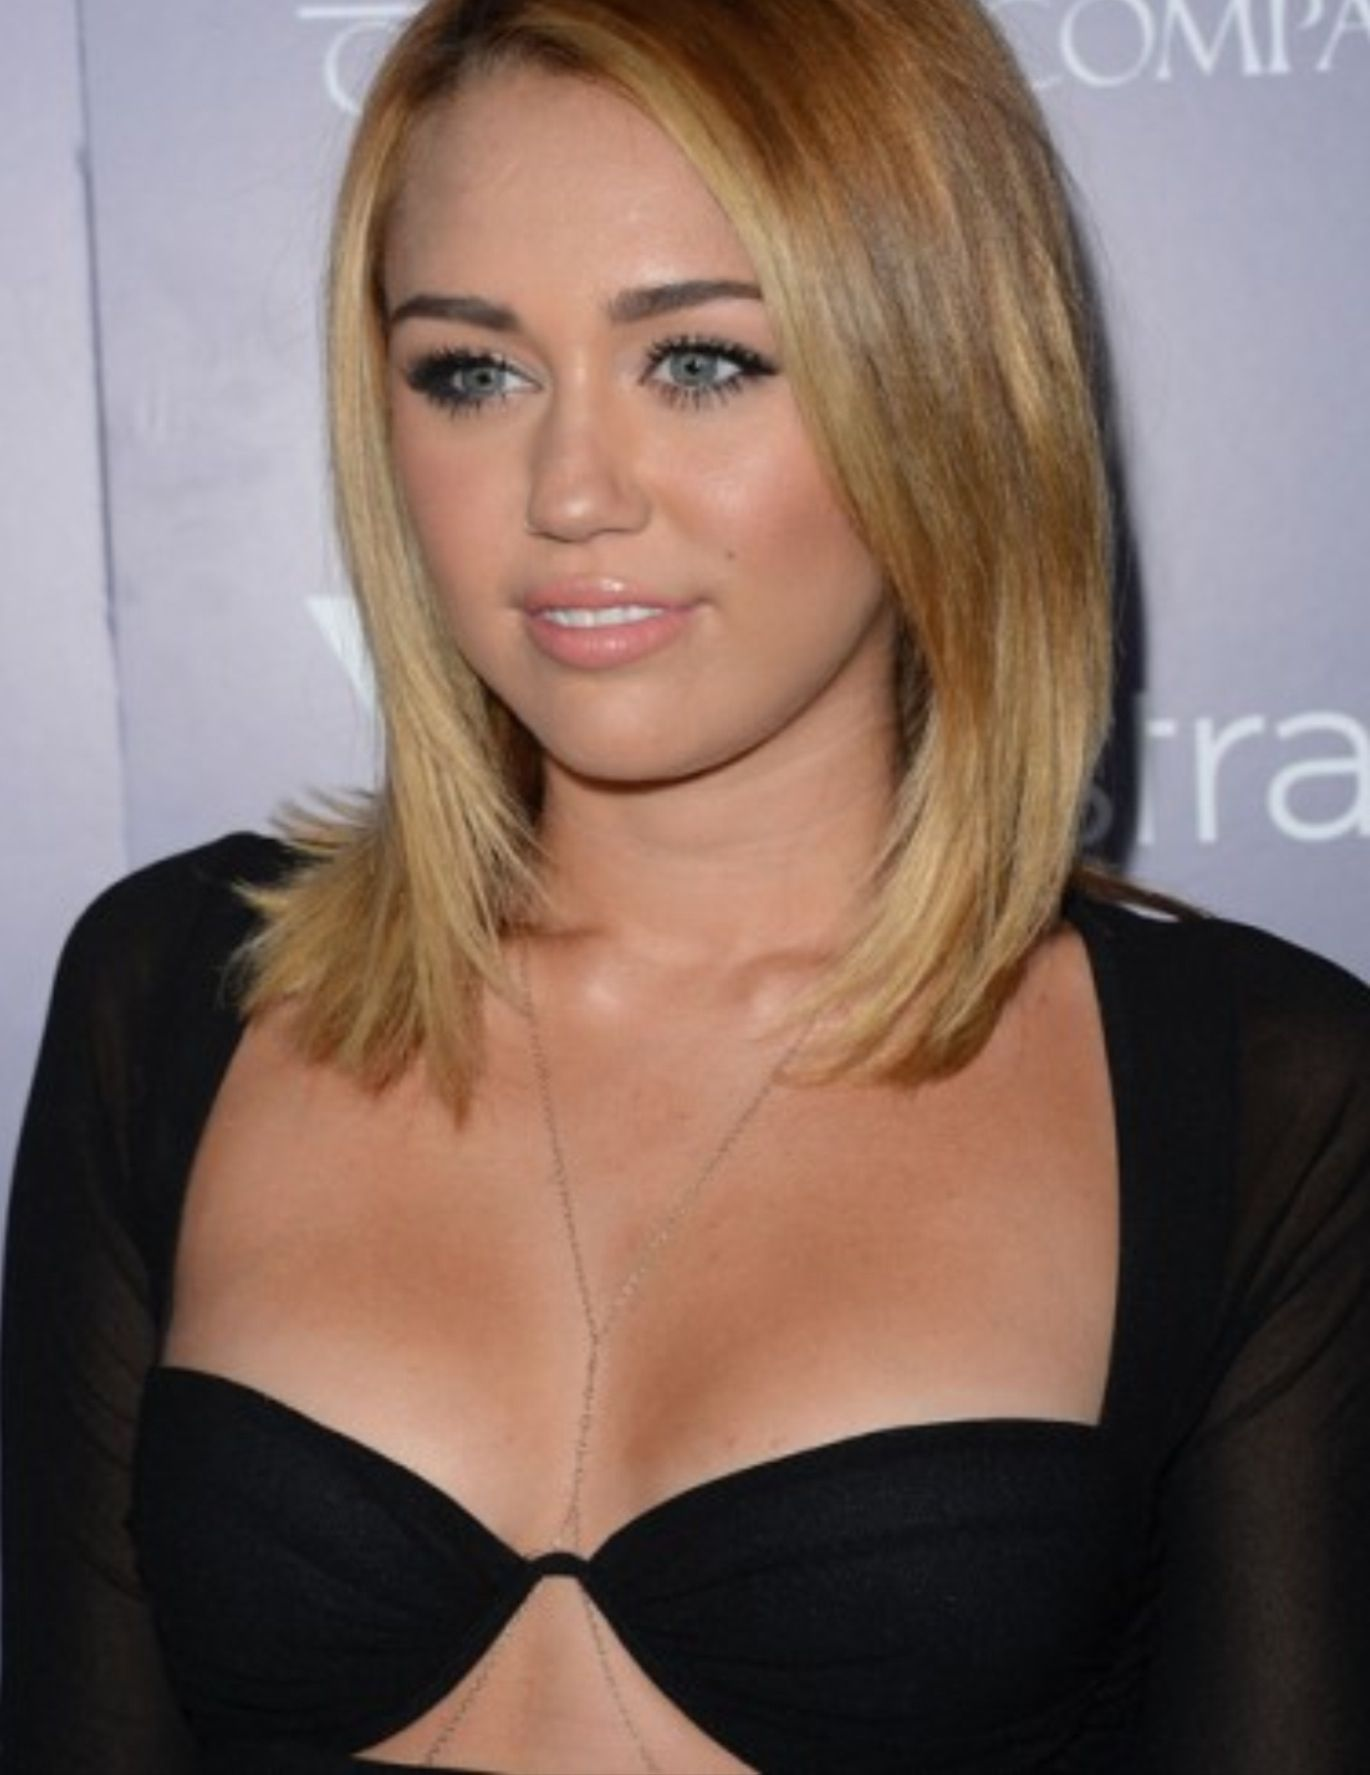 Miley Cyrus Mid Length Hair With Images Miley Cyrus Long Hair Miley Cyrus Hair Miley Cyrus Brown Hair